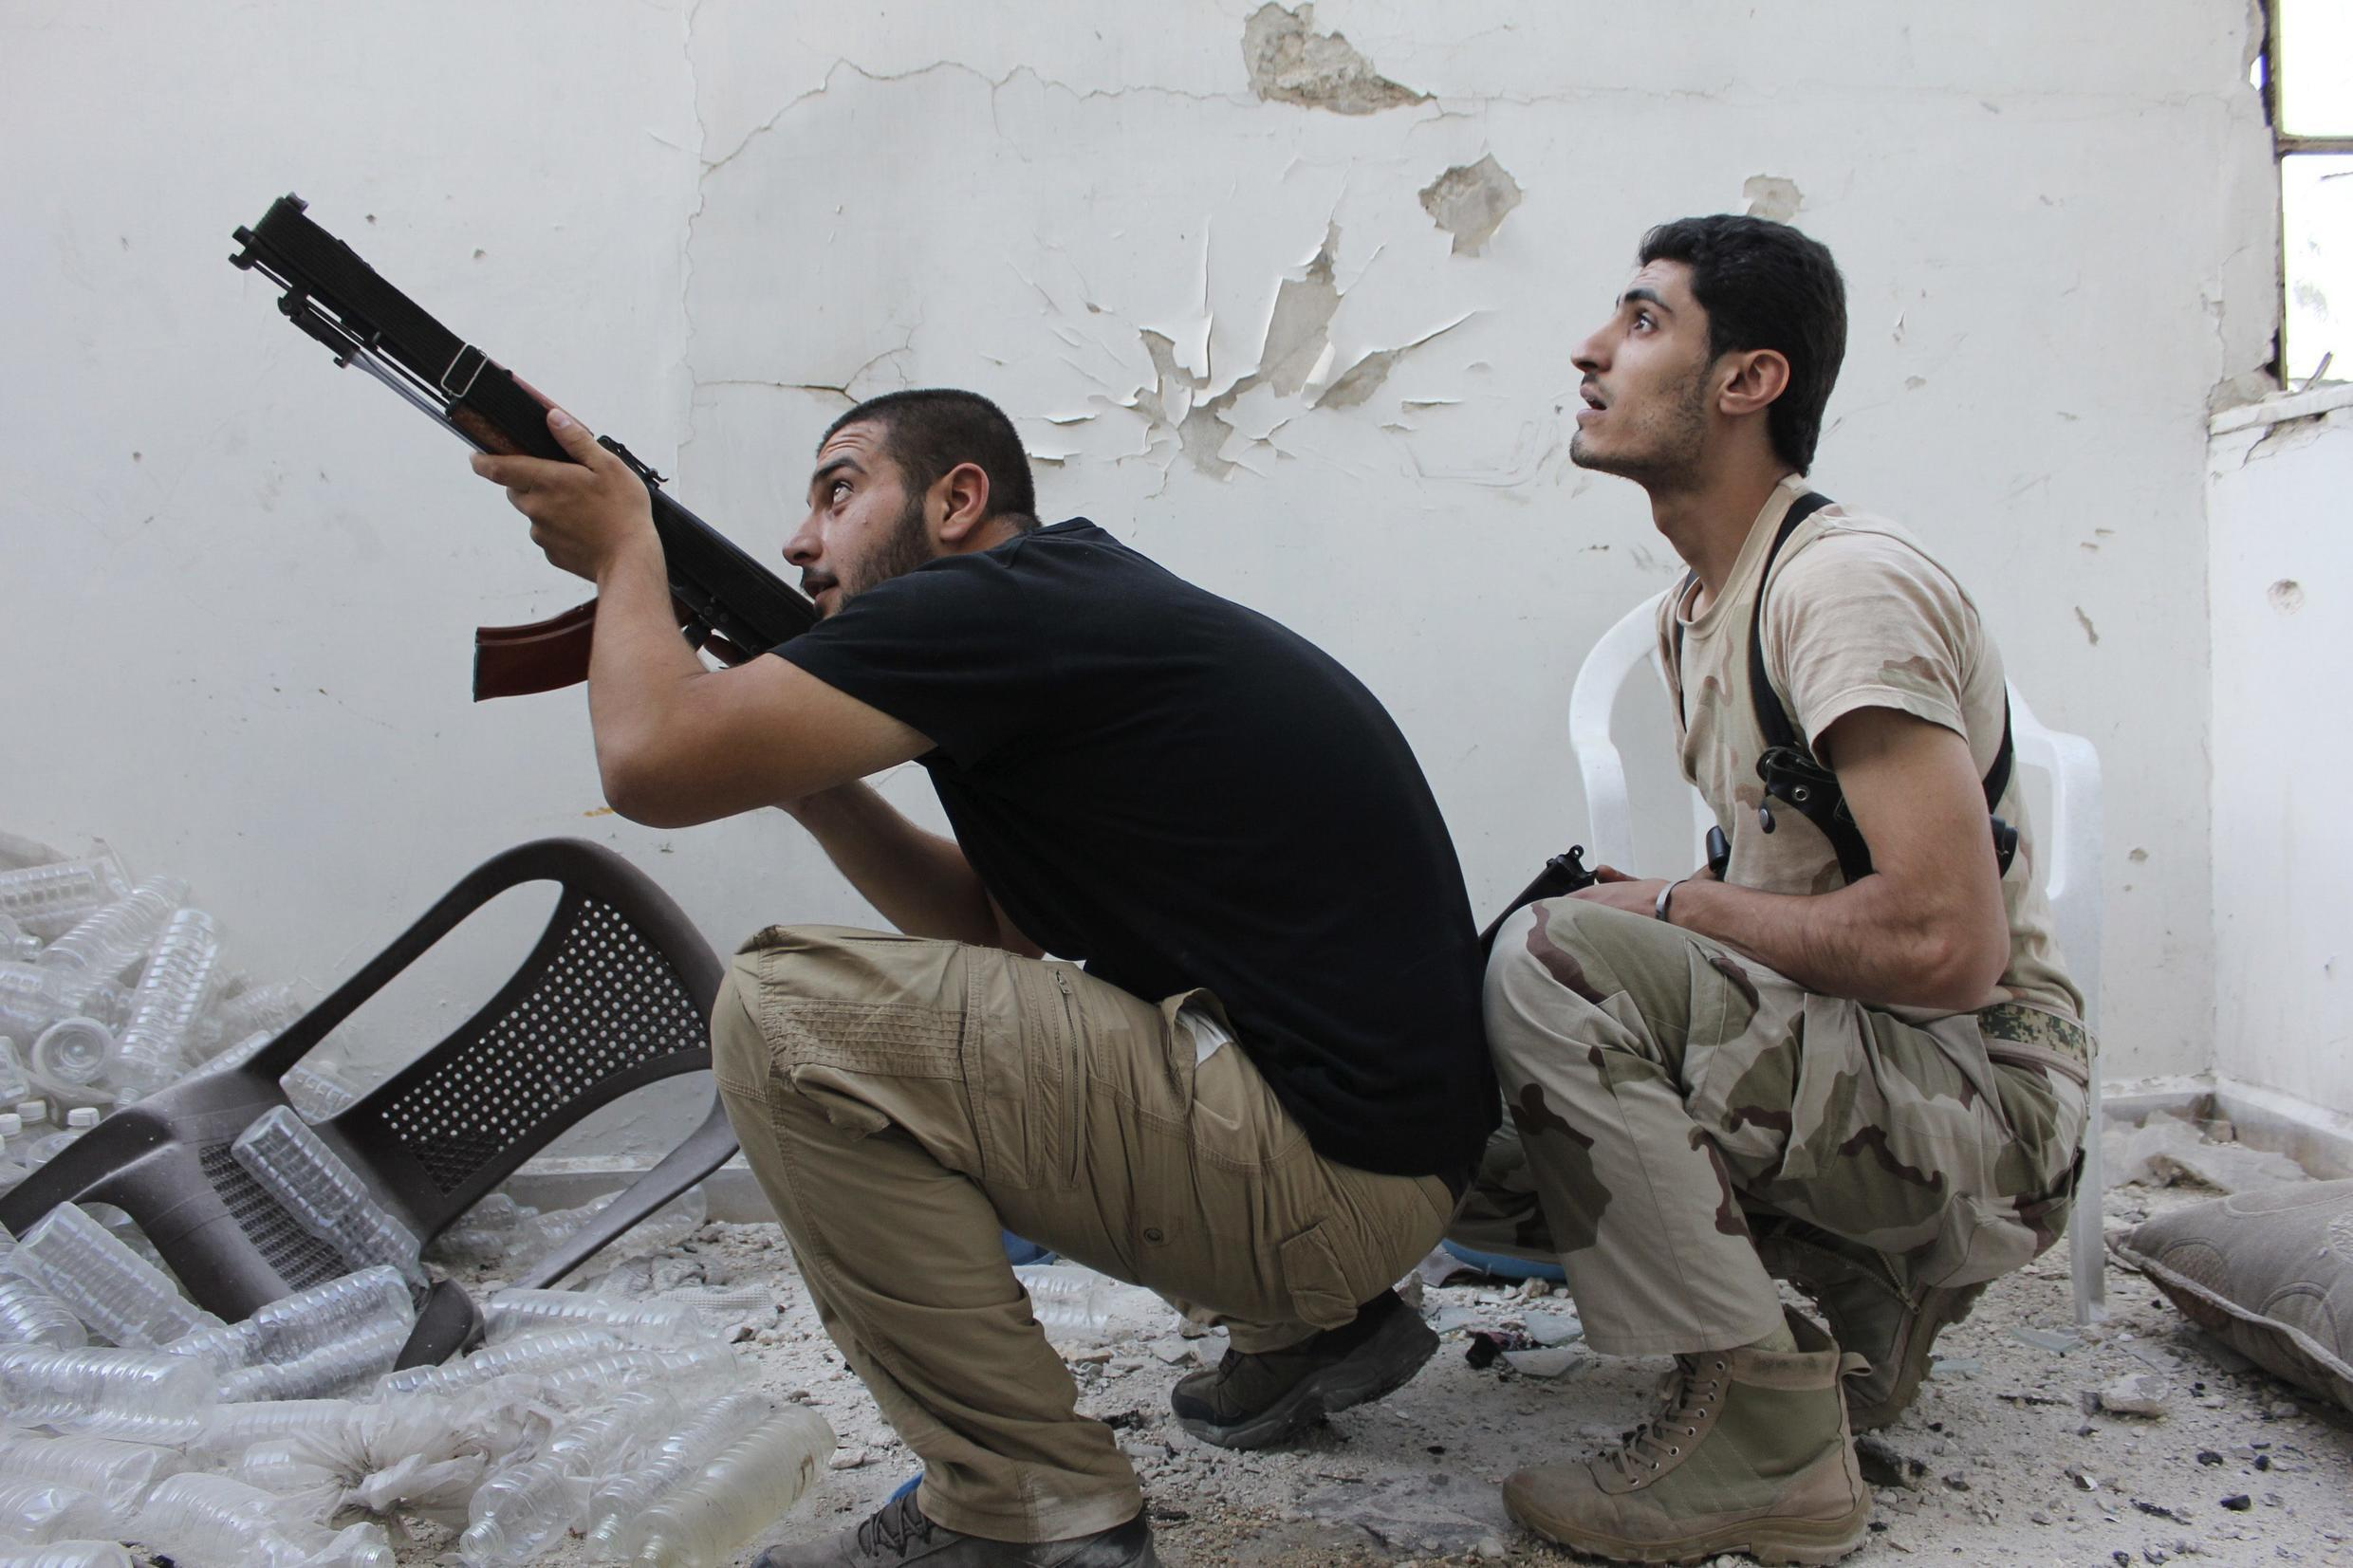 A Free Syrian Army fighter points his weapon as his fellow fighter watches in Aleppo's Al-Ezaa neighbourhood September 11, 2013.